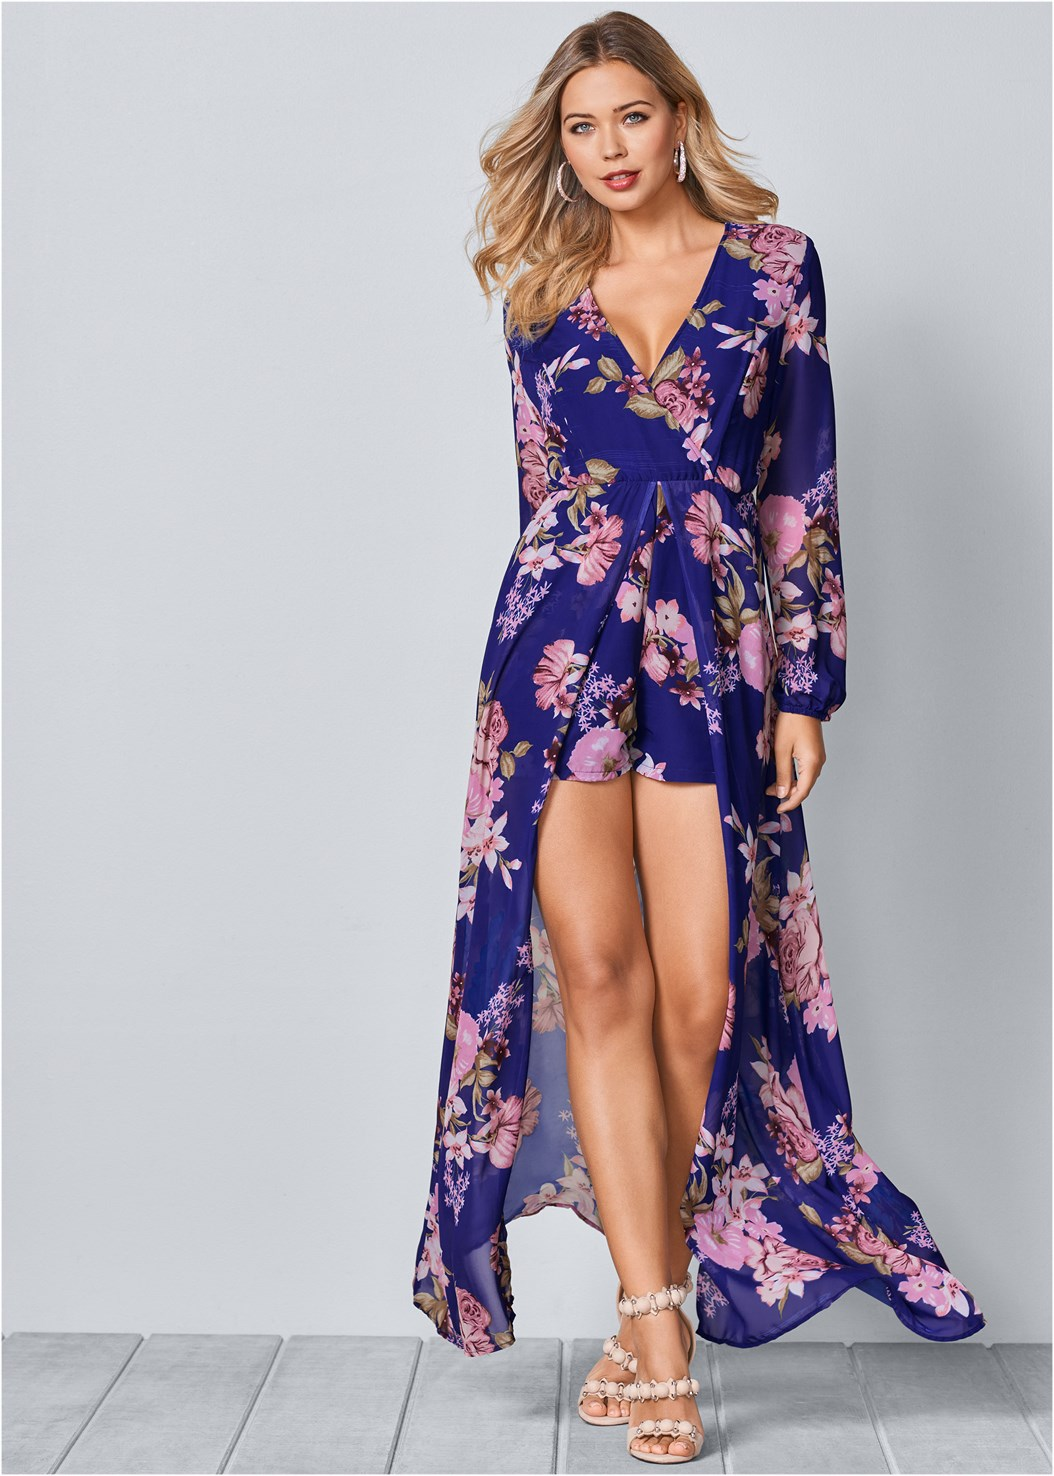 Printed Romper,High Heel Strappy Sandals